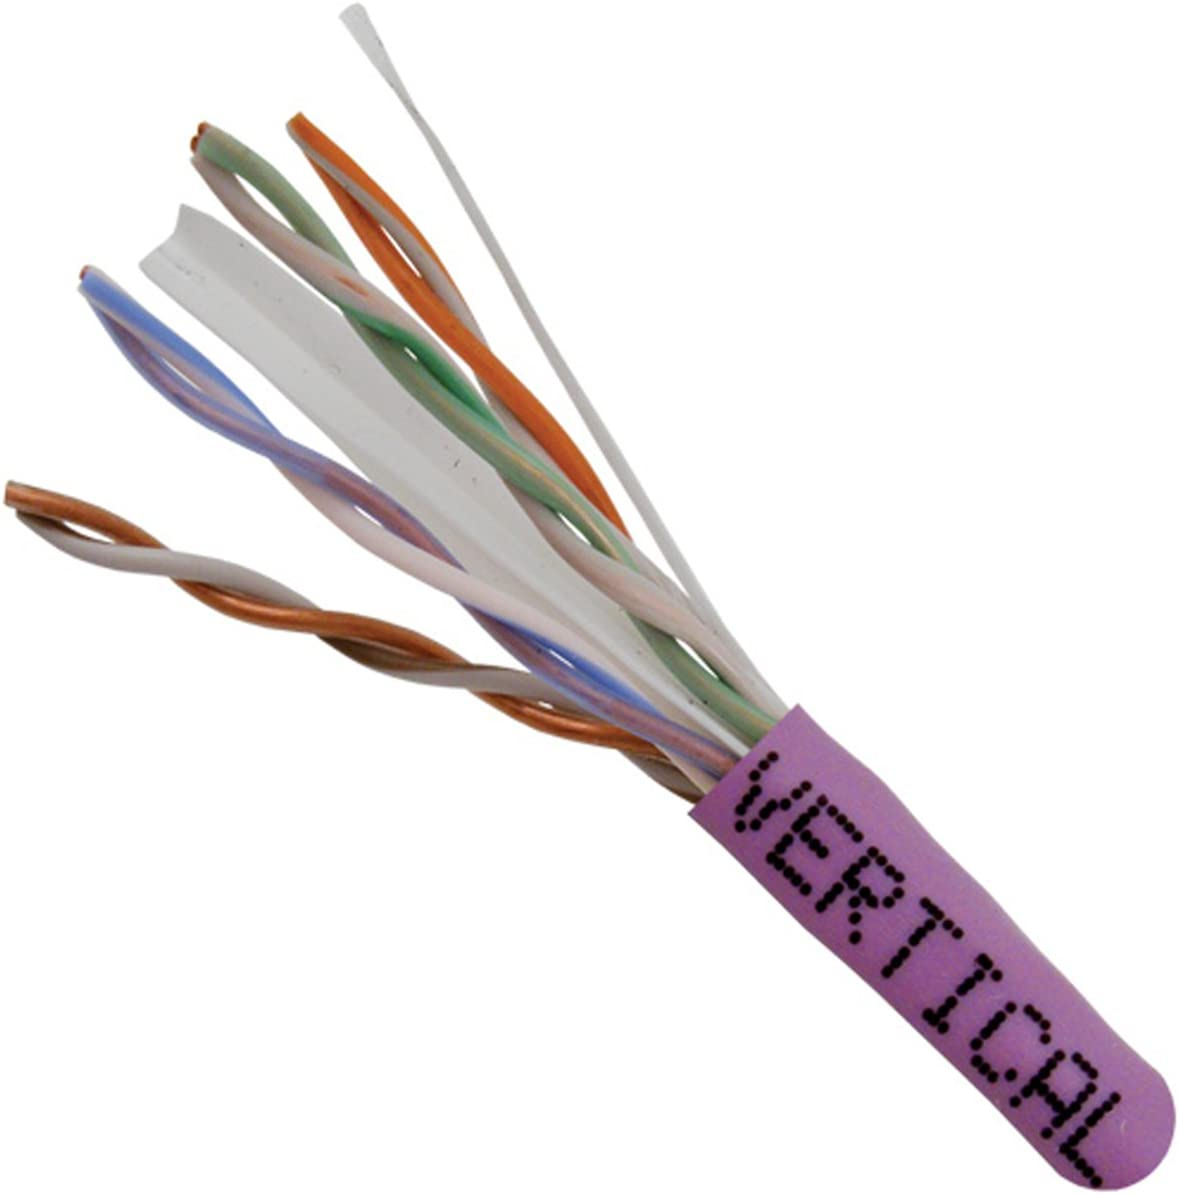 23AWG 1000ft Bulk Ethernet Cable 161 Series Vertical Cable Cat6 Purple 550 MHz Solid Bare Copper UTP